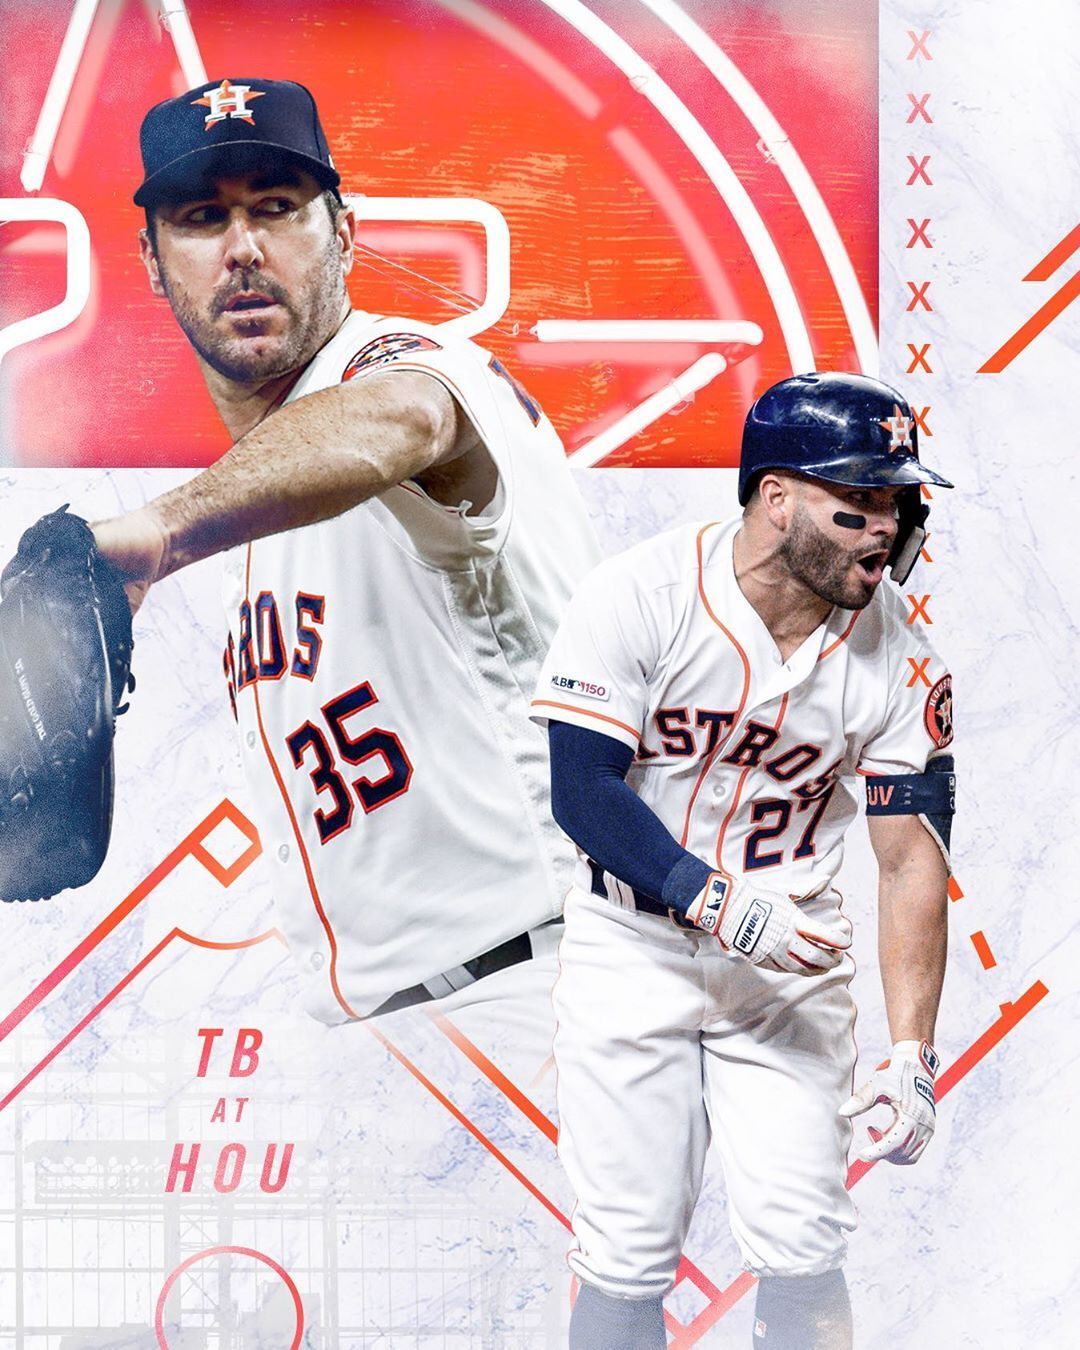 Houston Astros Our House Tomorrow Be Loud Takeitback Astros Houston Astros Astros Baseball